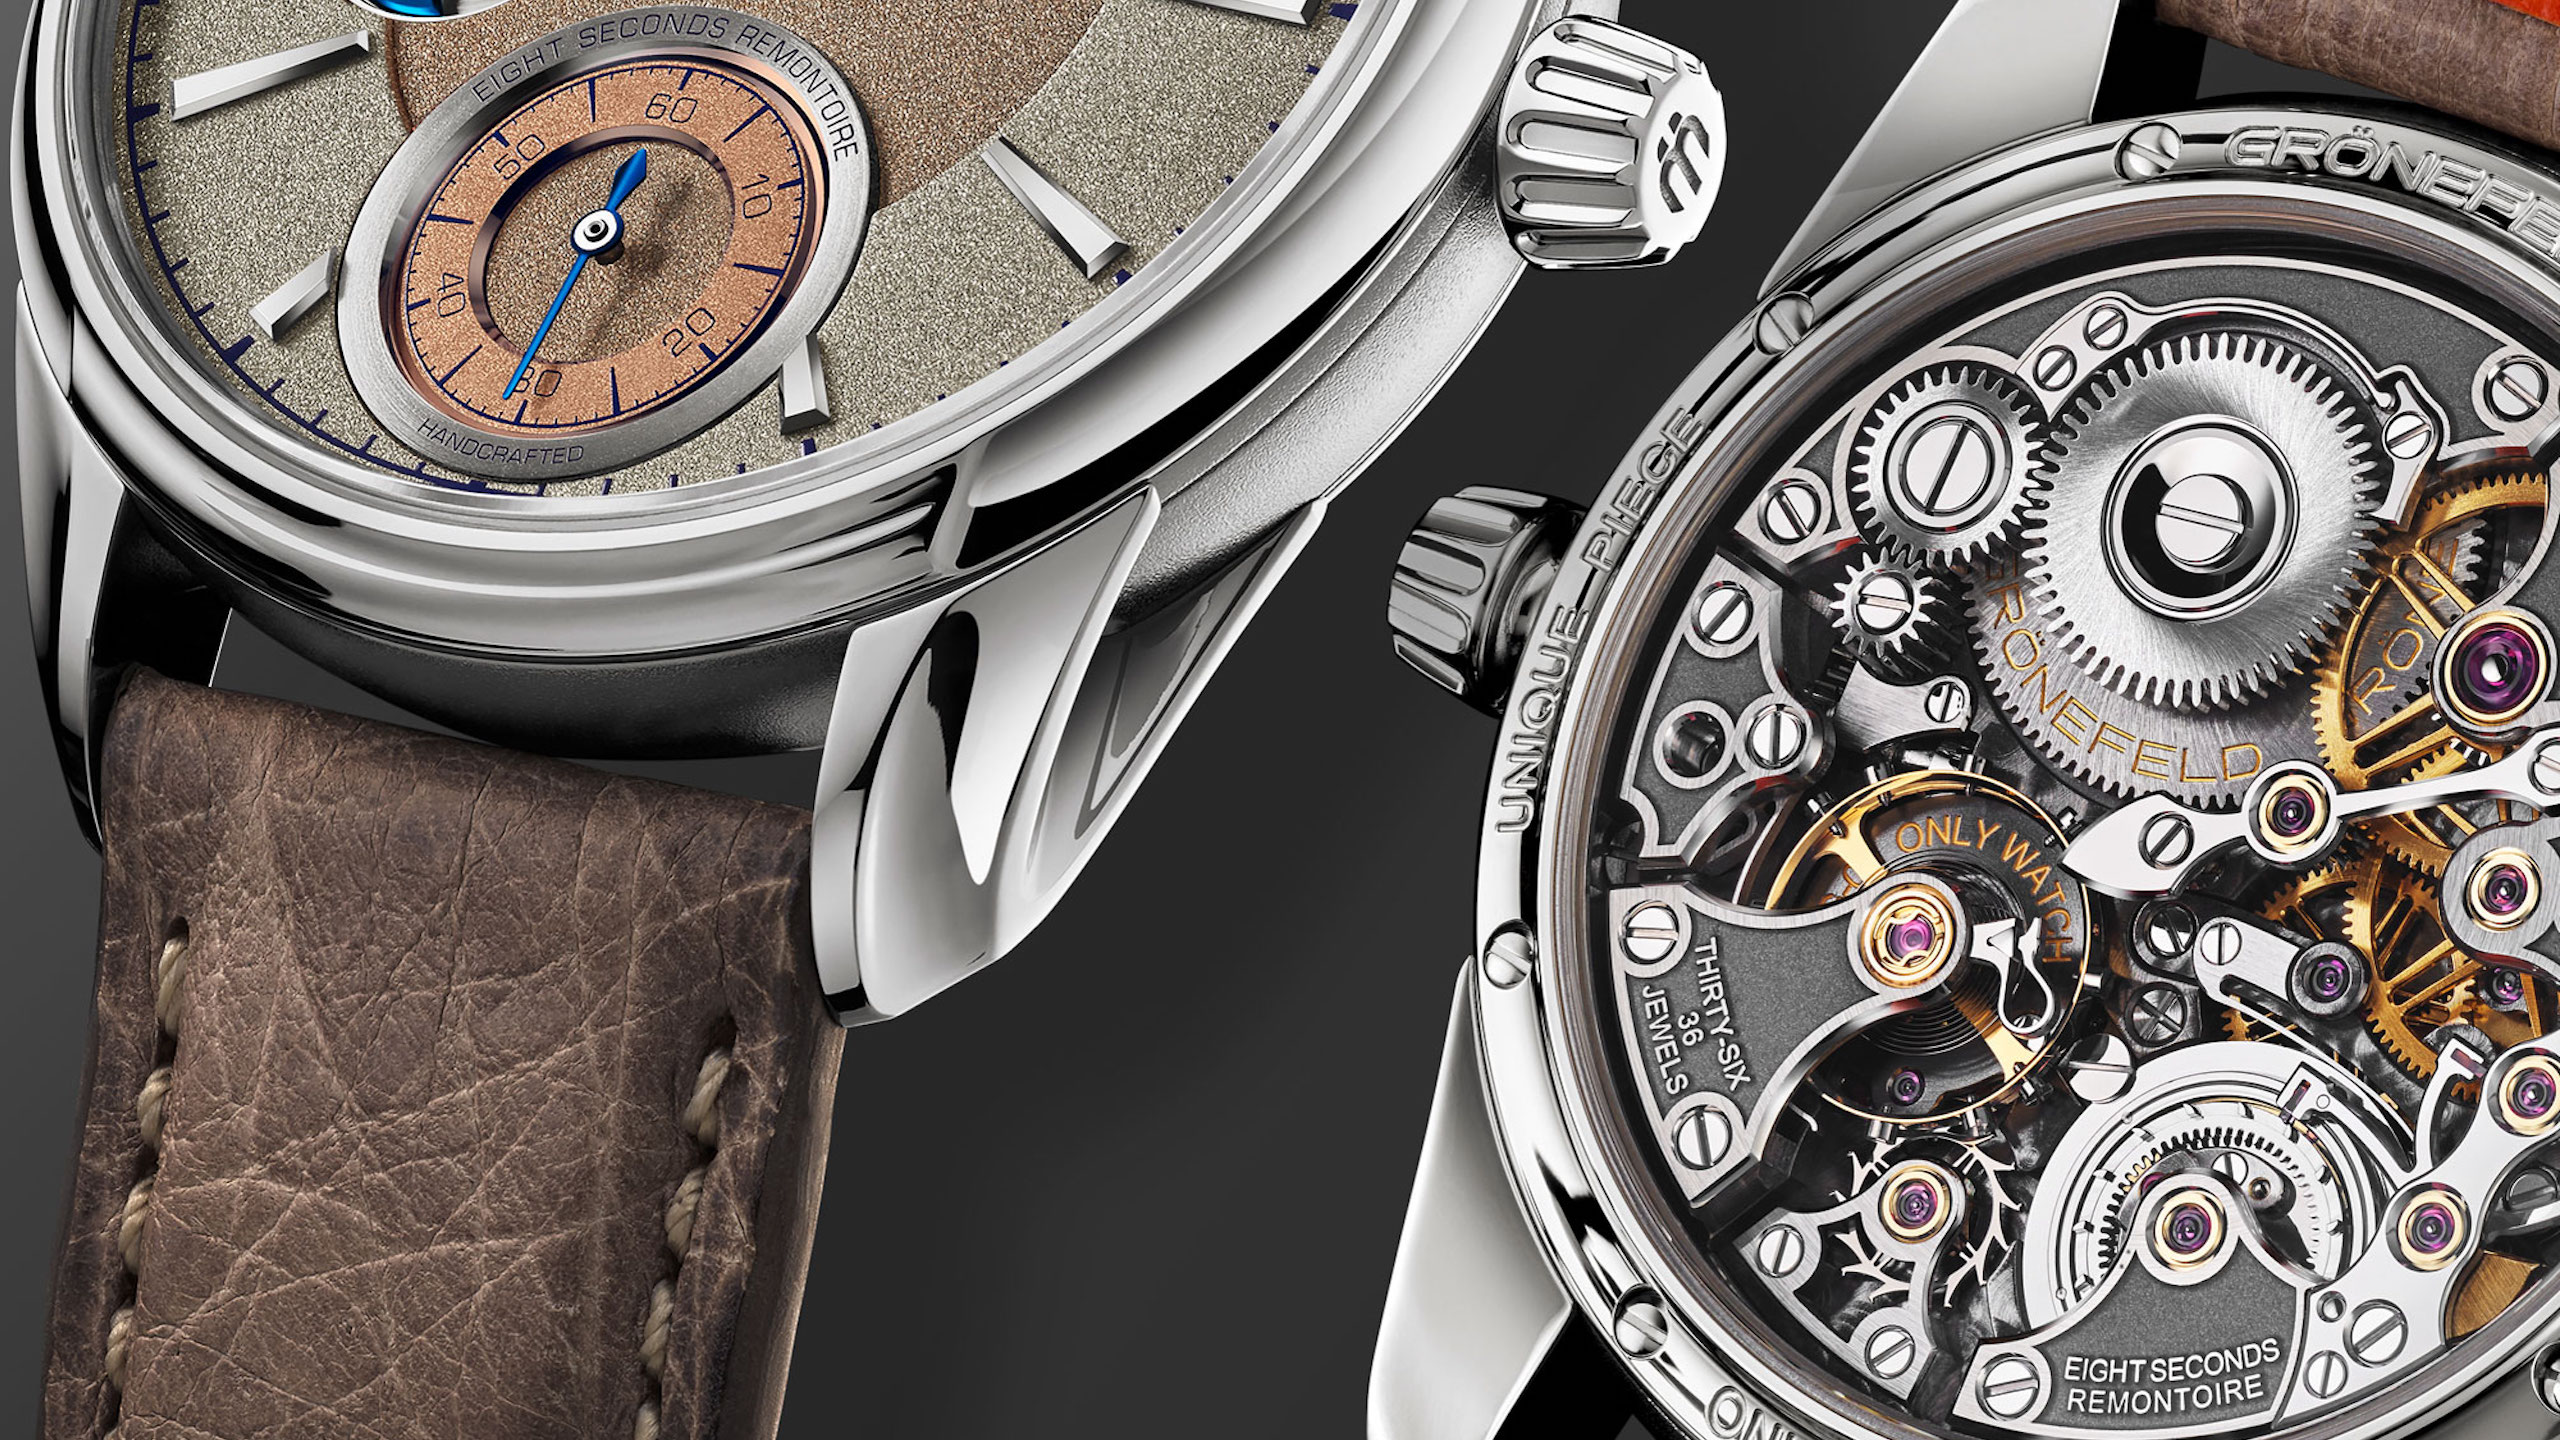 5 outstanding timepieces up for auction at Only Watch 2019